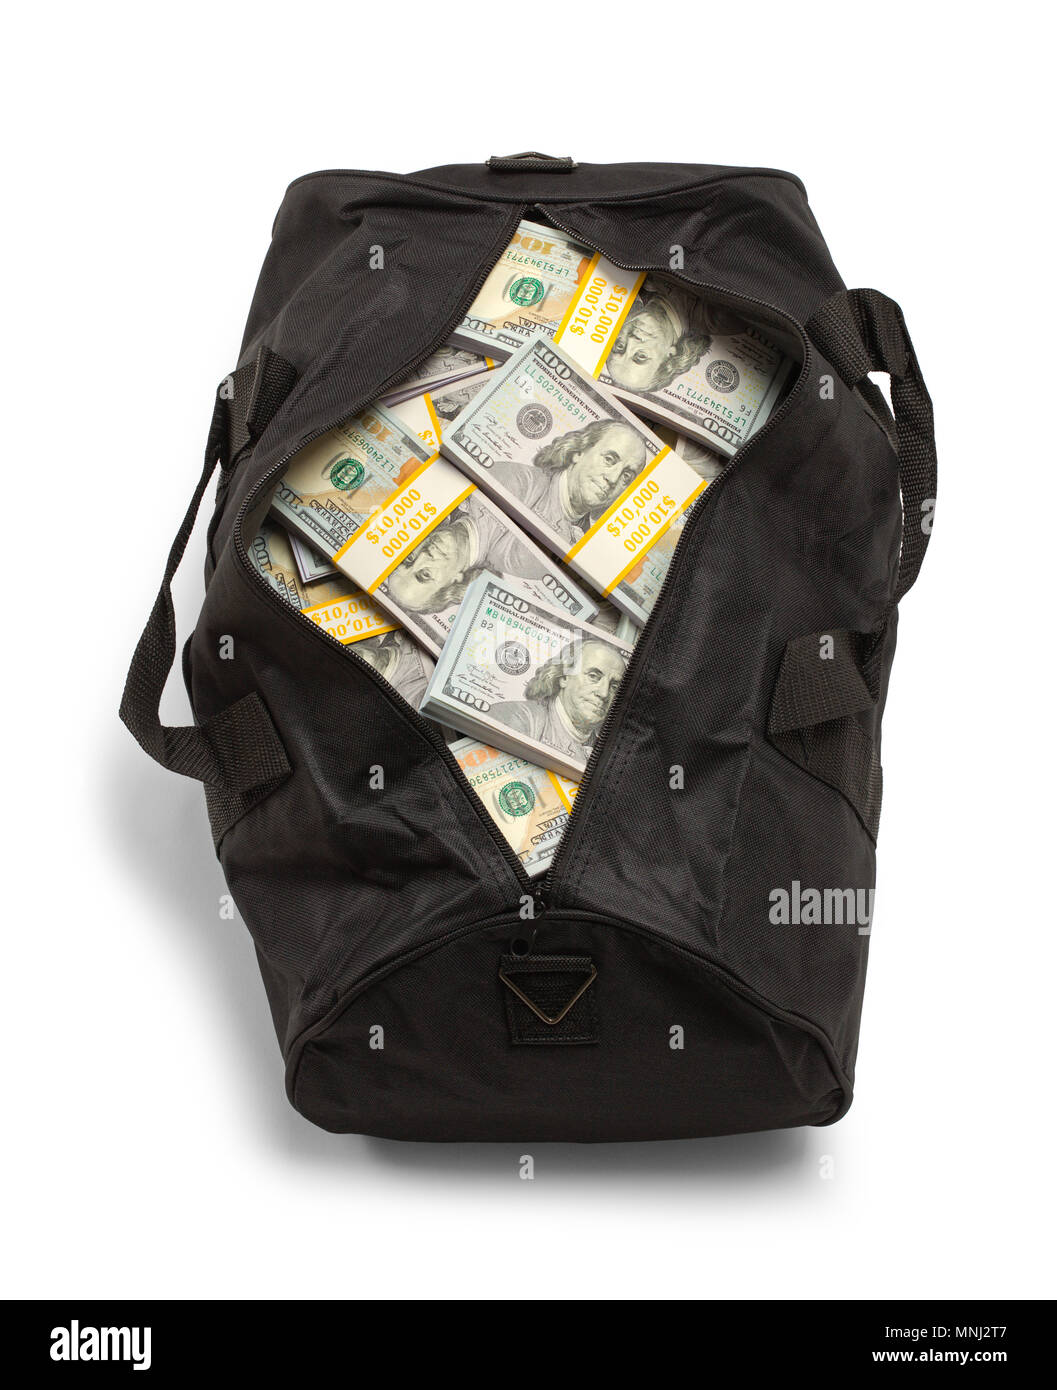 2f84e3bb0e Black Duffel Bag Full of Money Isolated on a White Background. - Stock Image